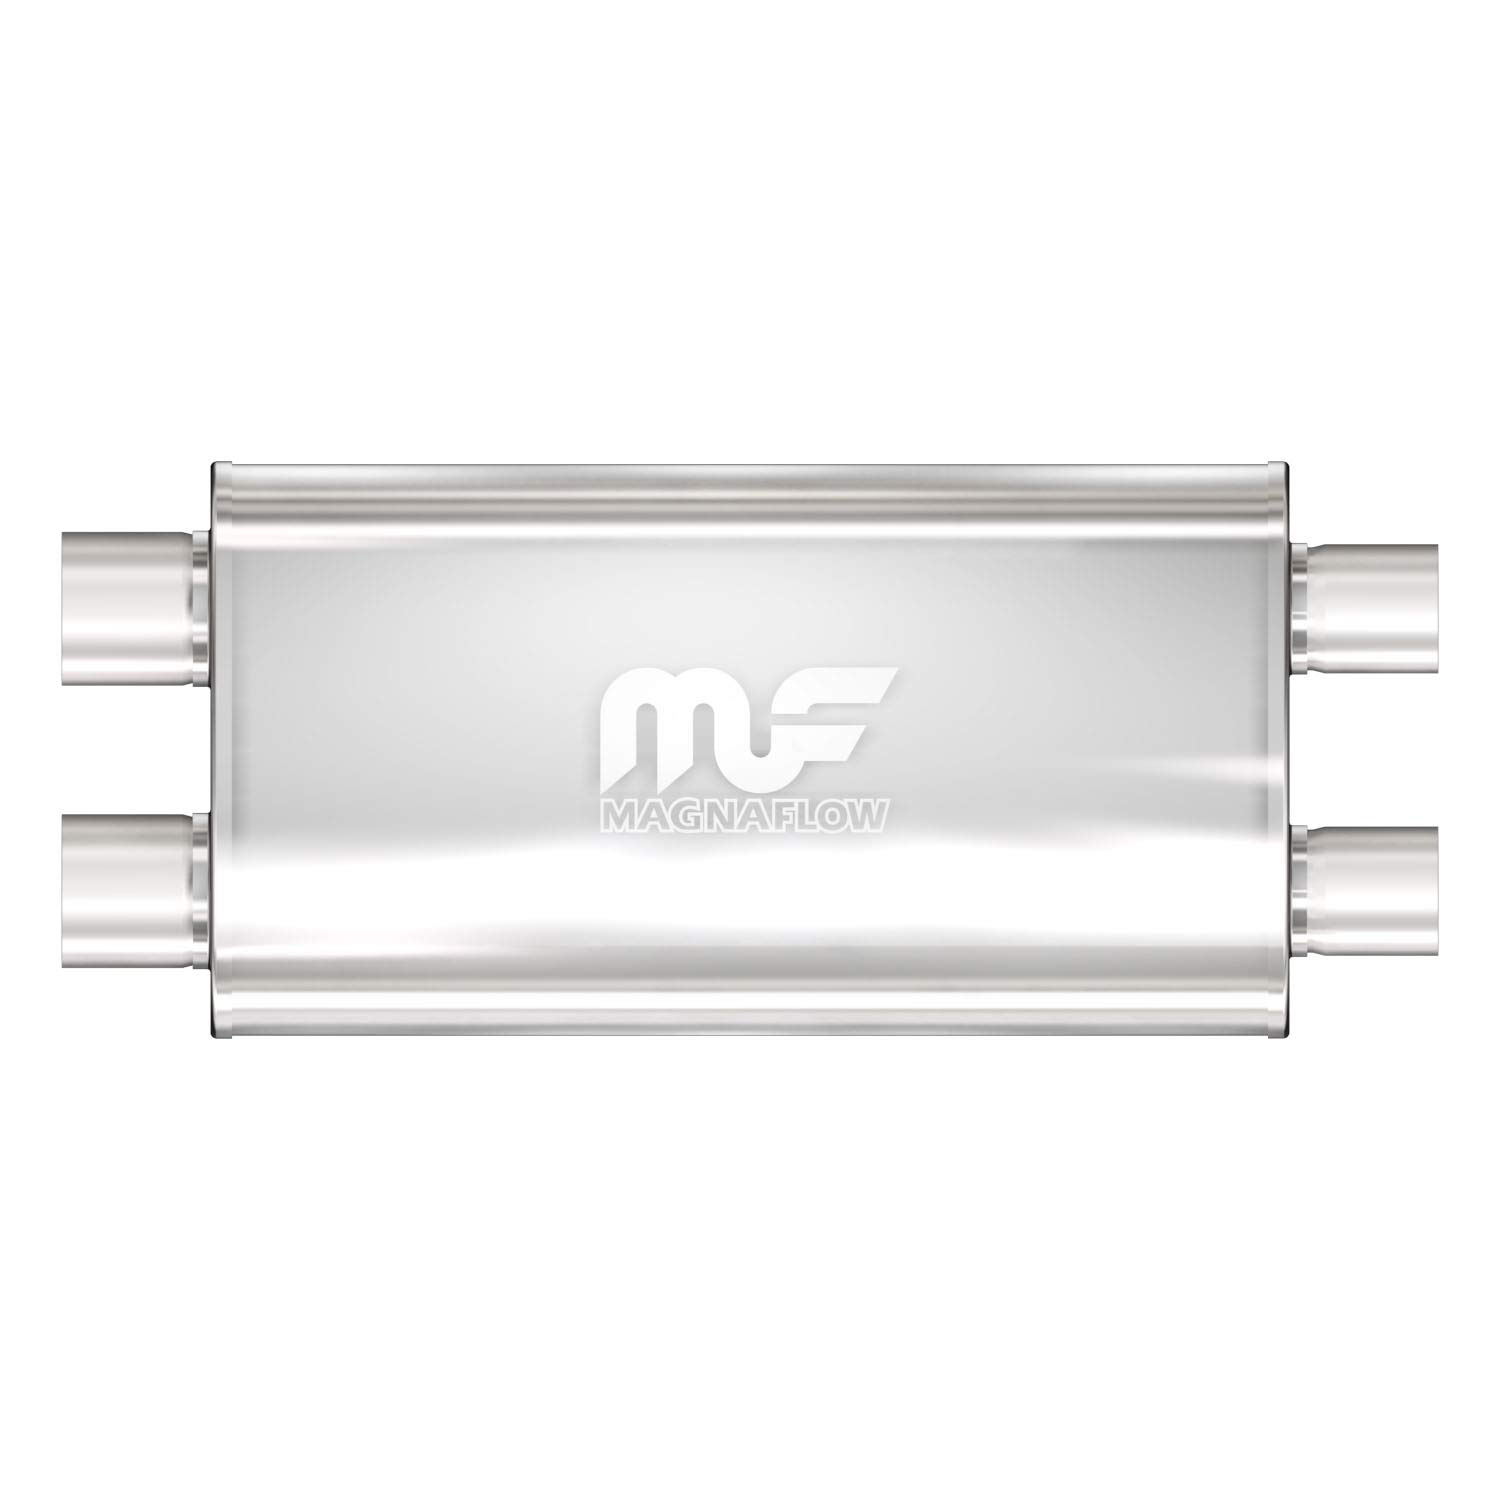 Magnaflow 12599 Satin Stainless Steel 3' Dual Oval Muffler MagnaFlow Exhaust Products